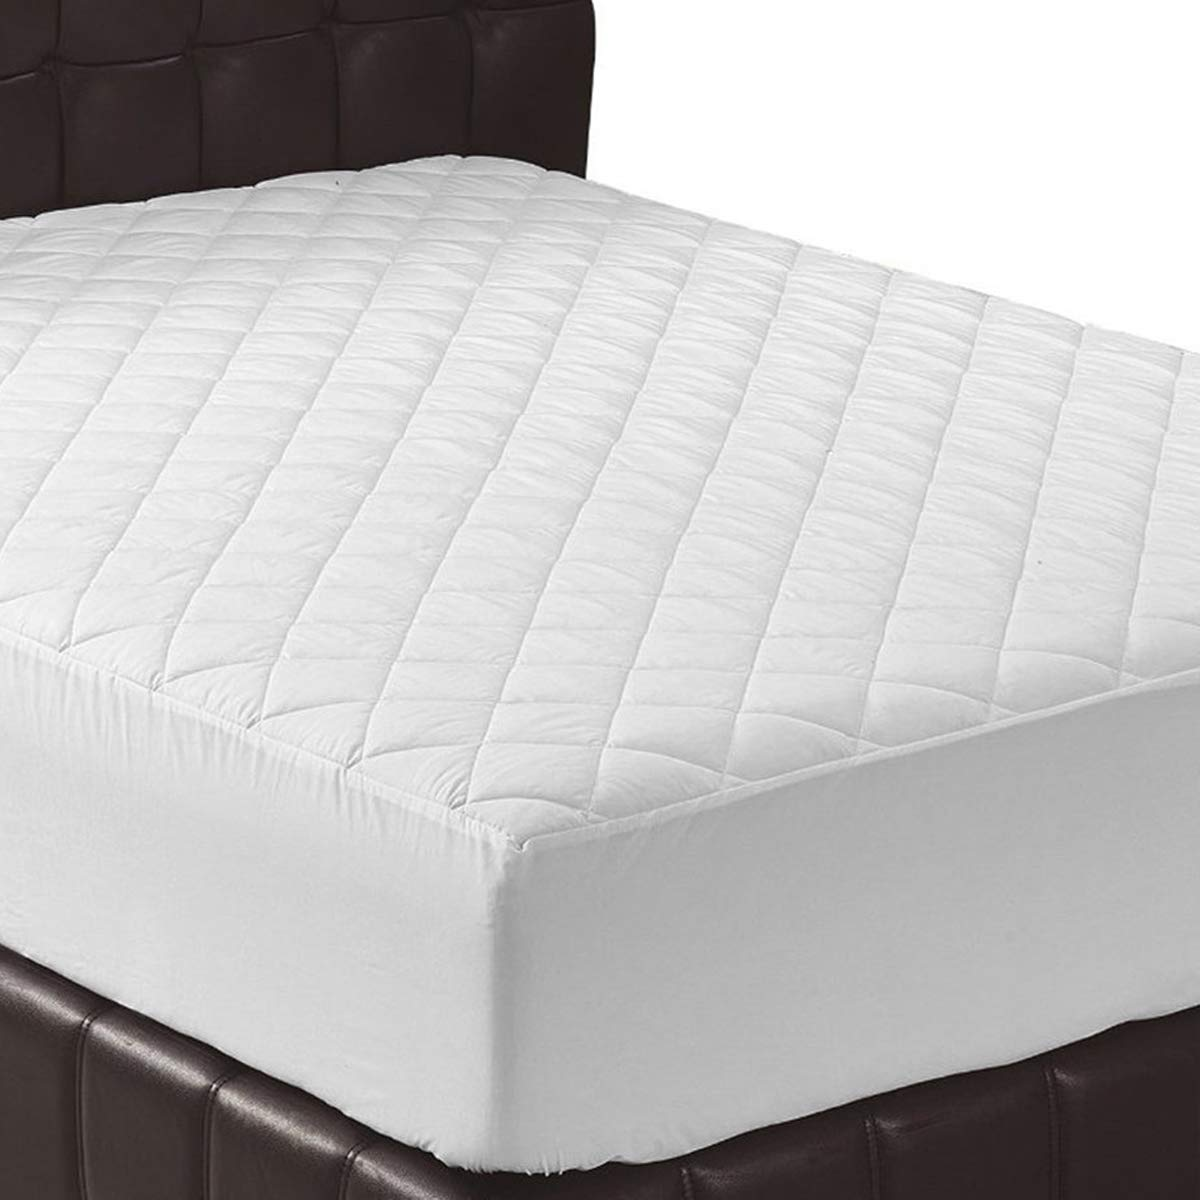 Best Rated In Mattress Pads Helpful Customer Reviews Amazon Com